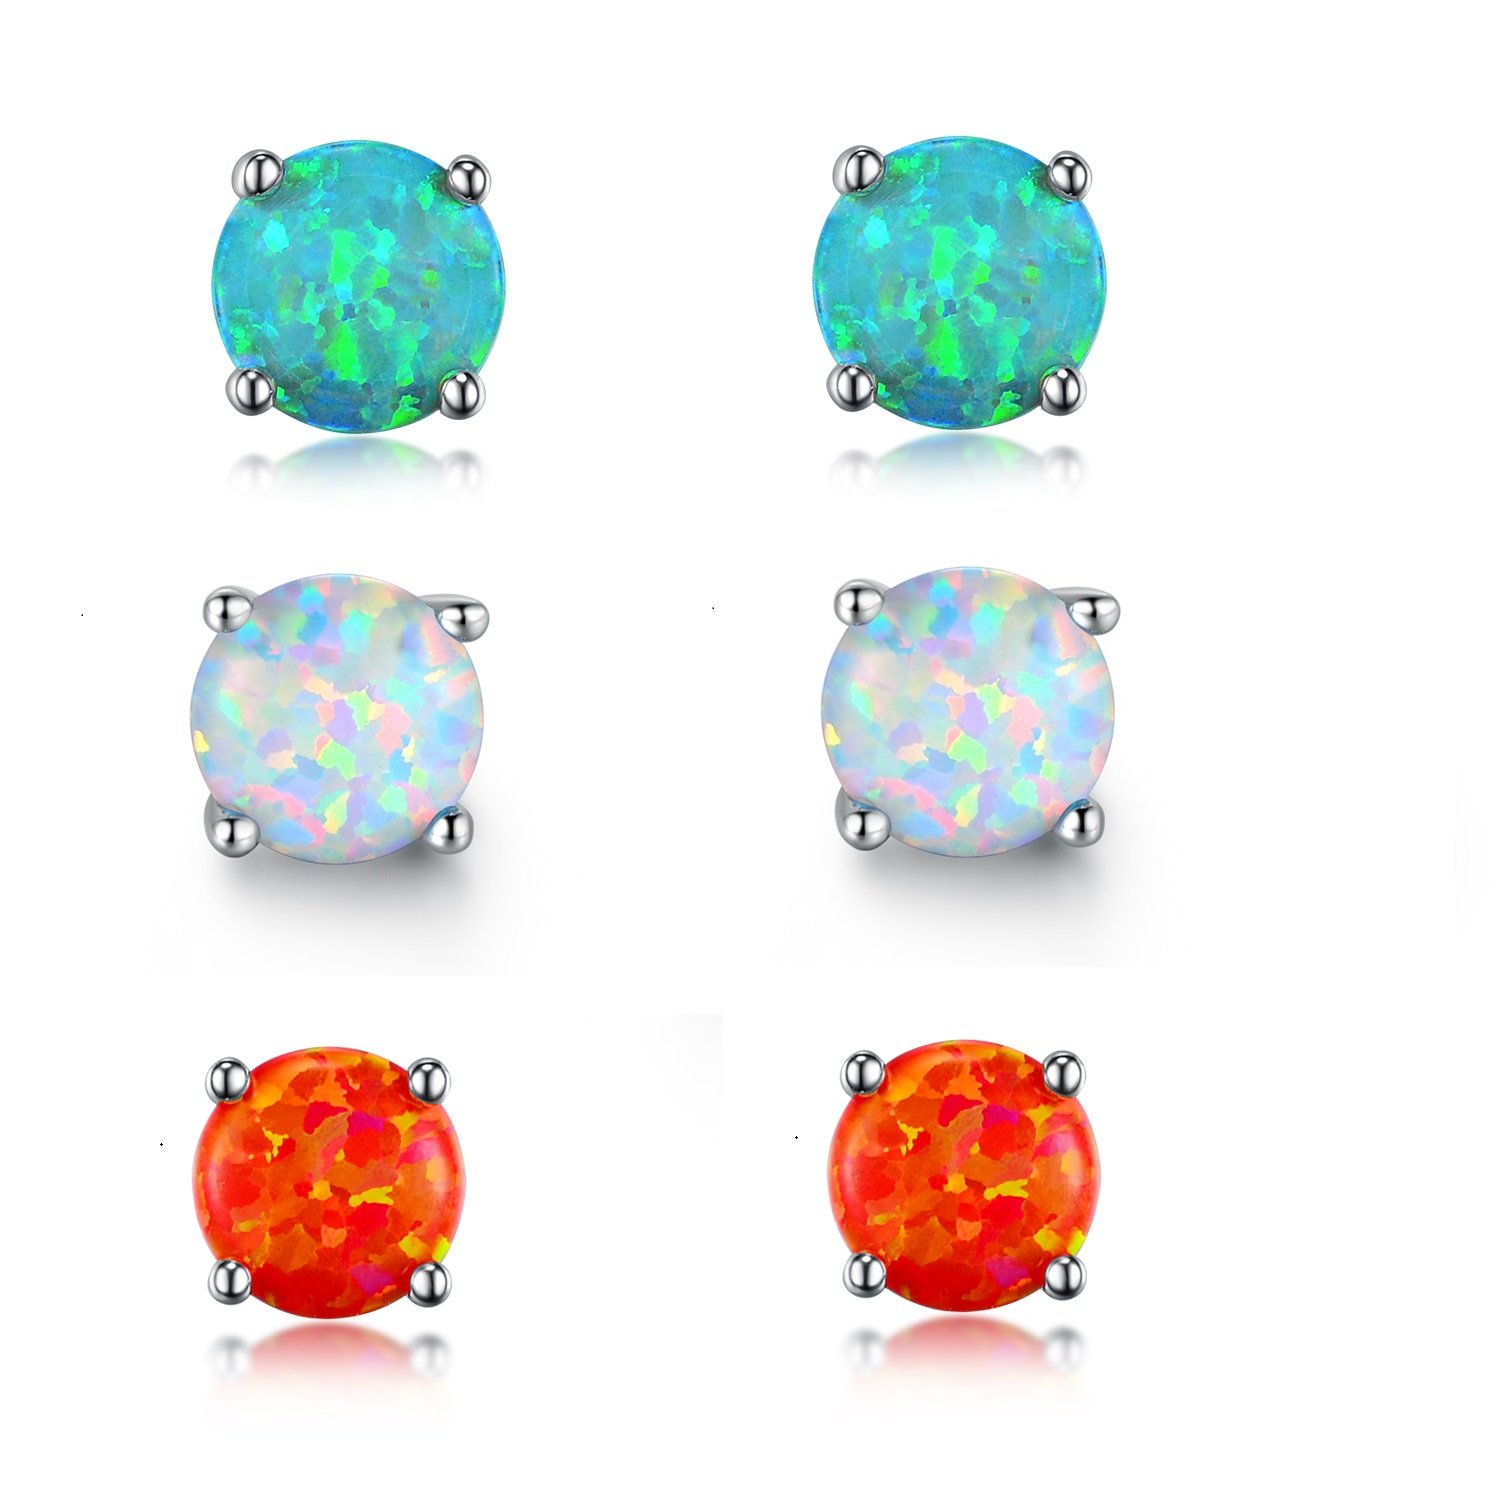 8d80d3dab Primary Stone:Synthetic Lab Created Opal 6mm. One Order Includes 3 Pairs  Earrings of Different opal colors. gree, white and fire.